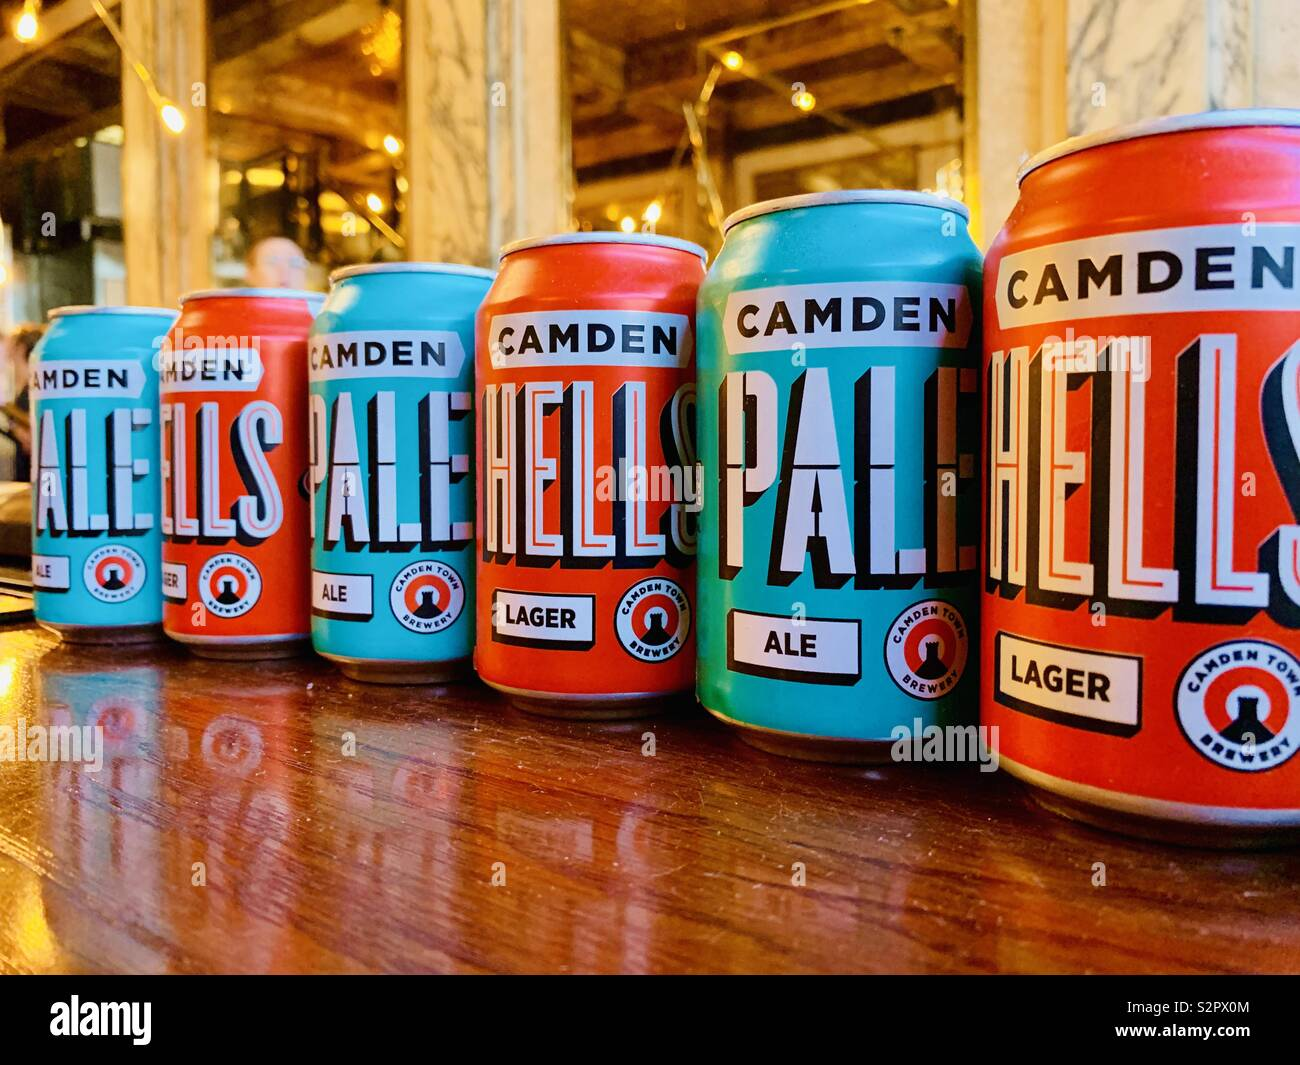 London,UK - 15th June 2019 - Cans of Camden Brewery lager and pale ale lined up in a burger restaurant on The Strand. - Stock Image